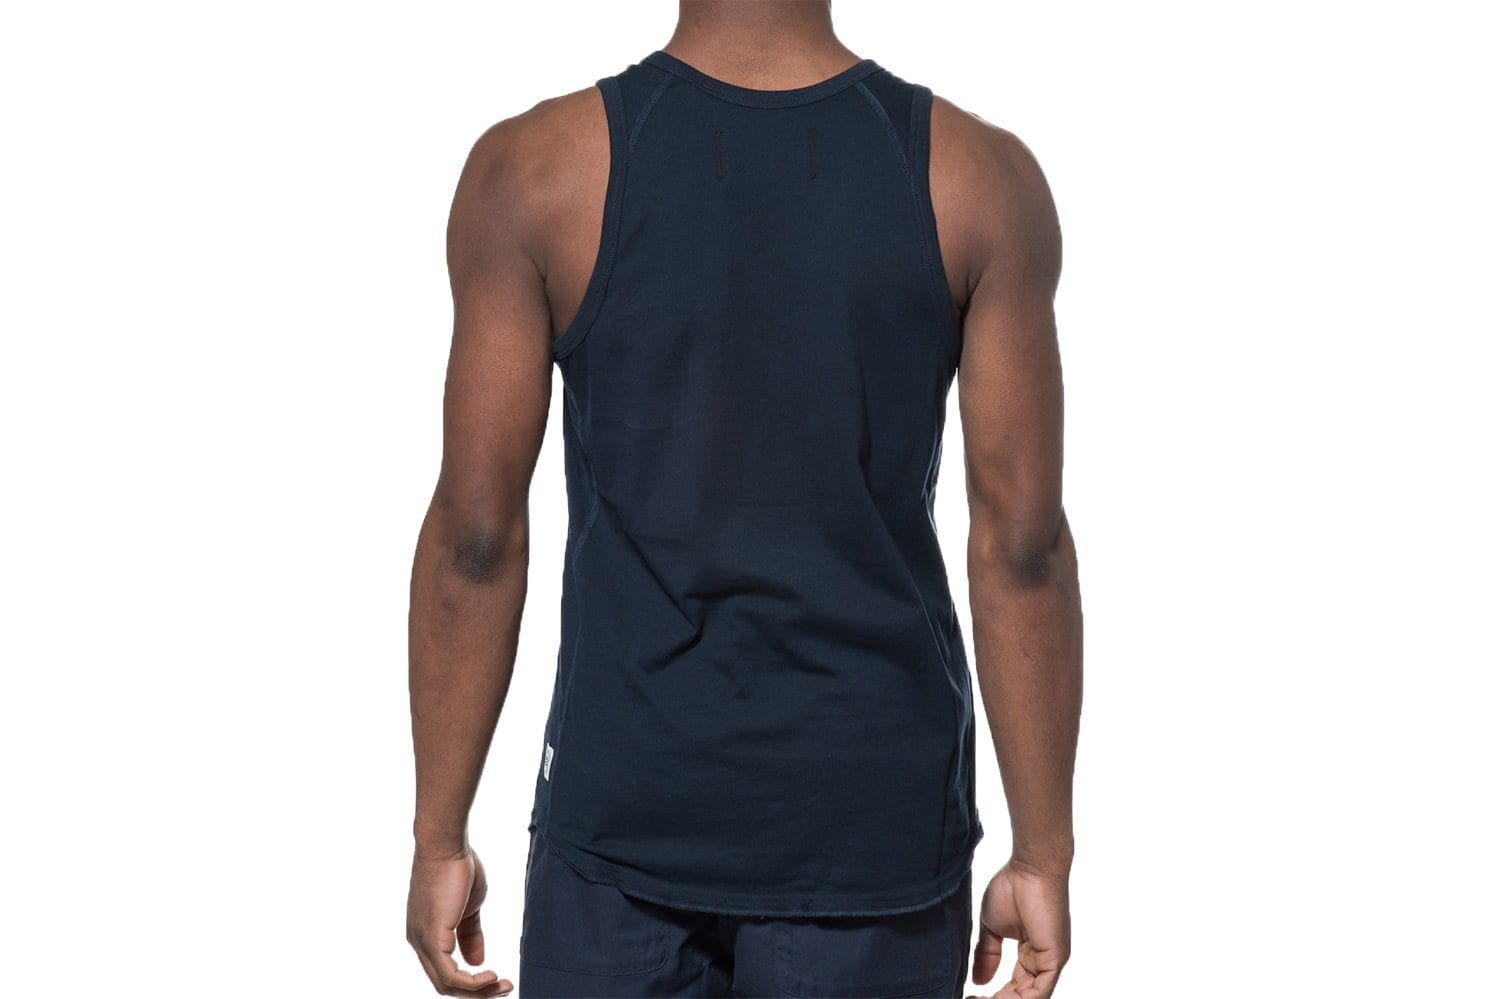 KNIT RINGSPUN JERSEY TANK TOP MENS SOFTGOODS REIGNING CHAMP